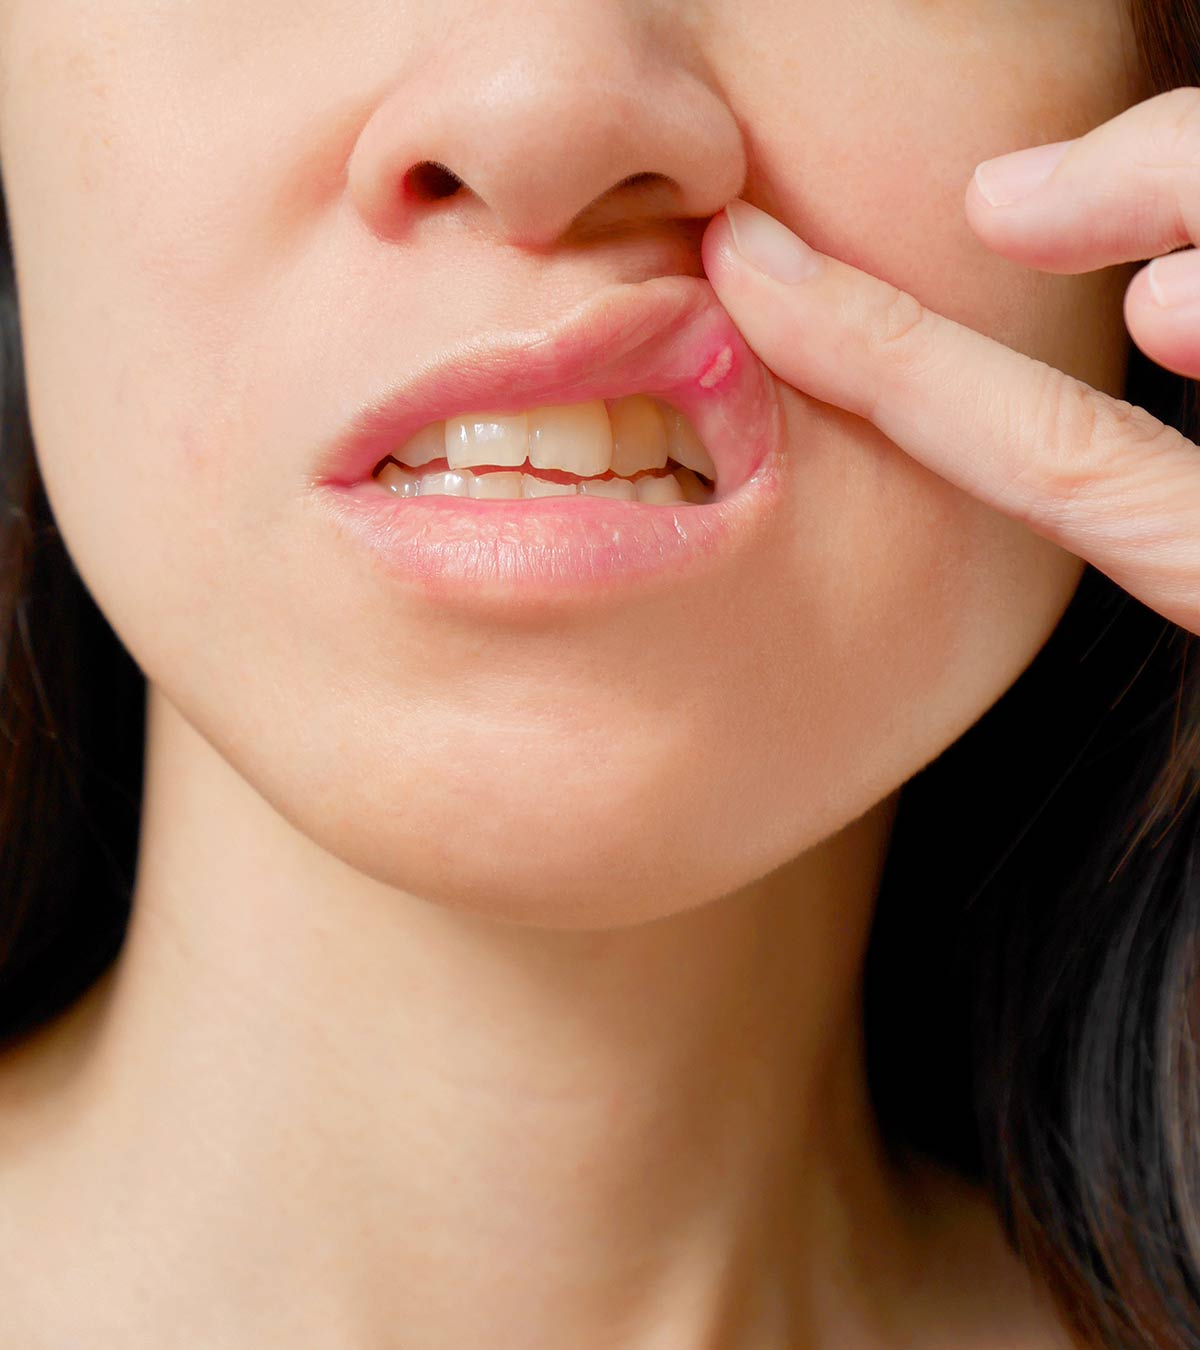 Mouth Ulcers (Canker Sores) In Pregnancy: Causes, Symptoms